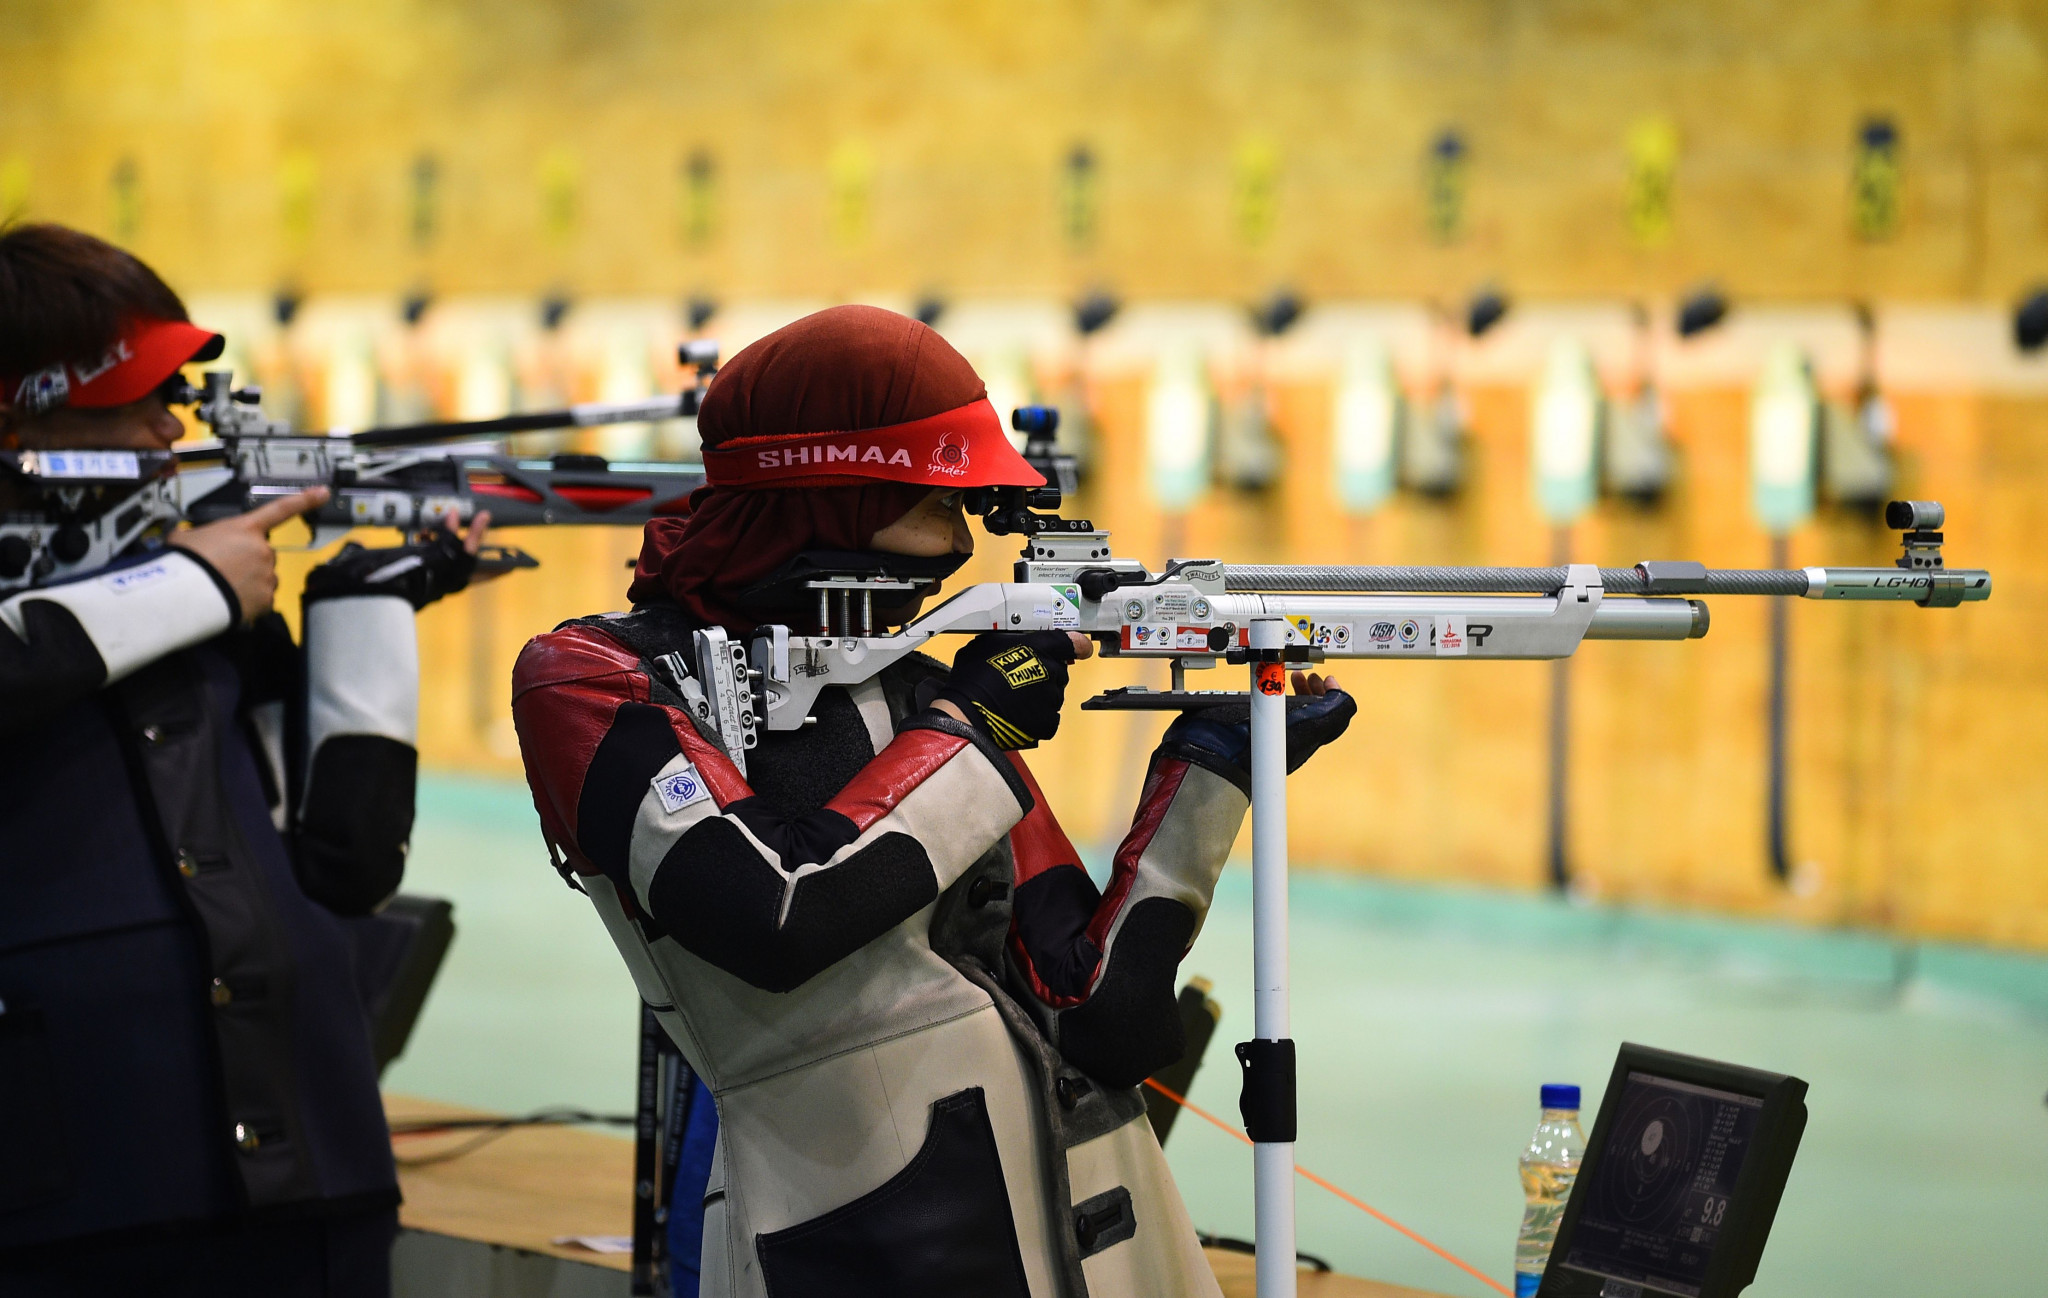 Competition at the ISSF World Cup is due to start on Saturday and will last for seven days until February 27 ©Getty Images